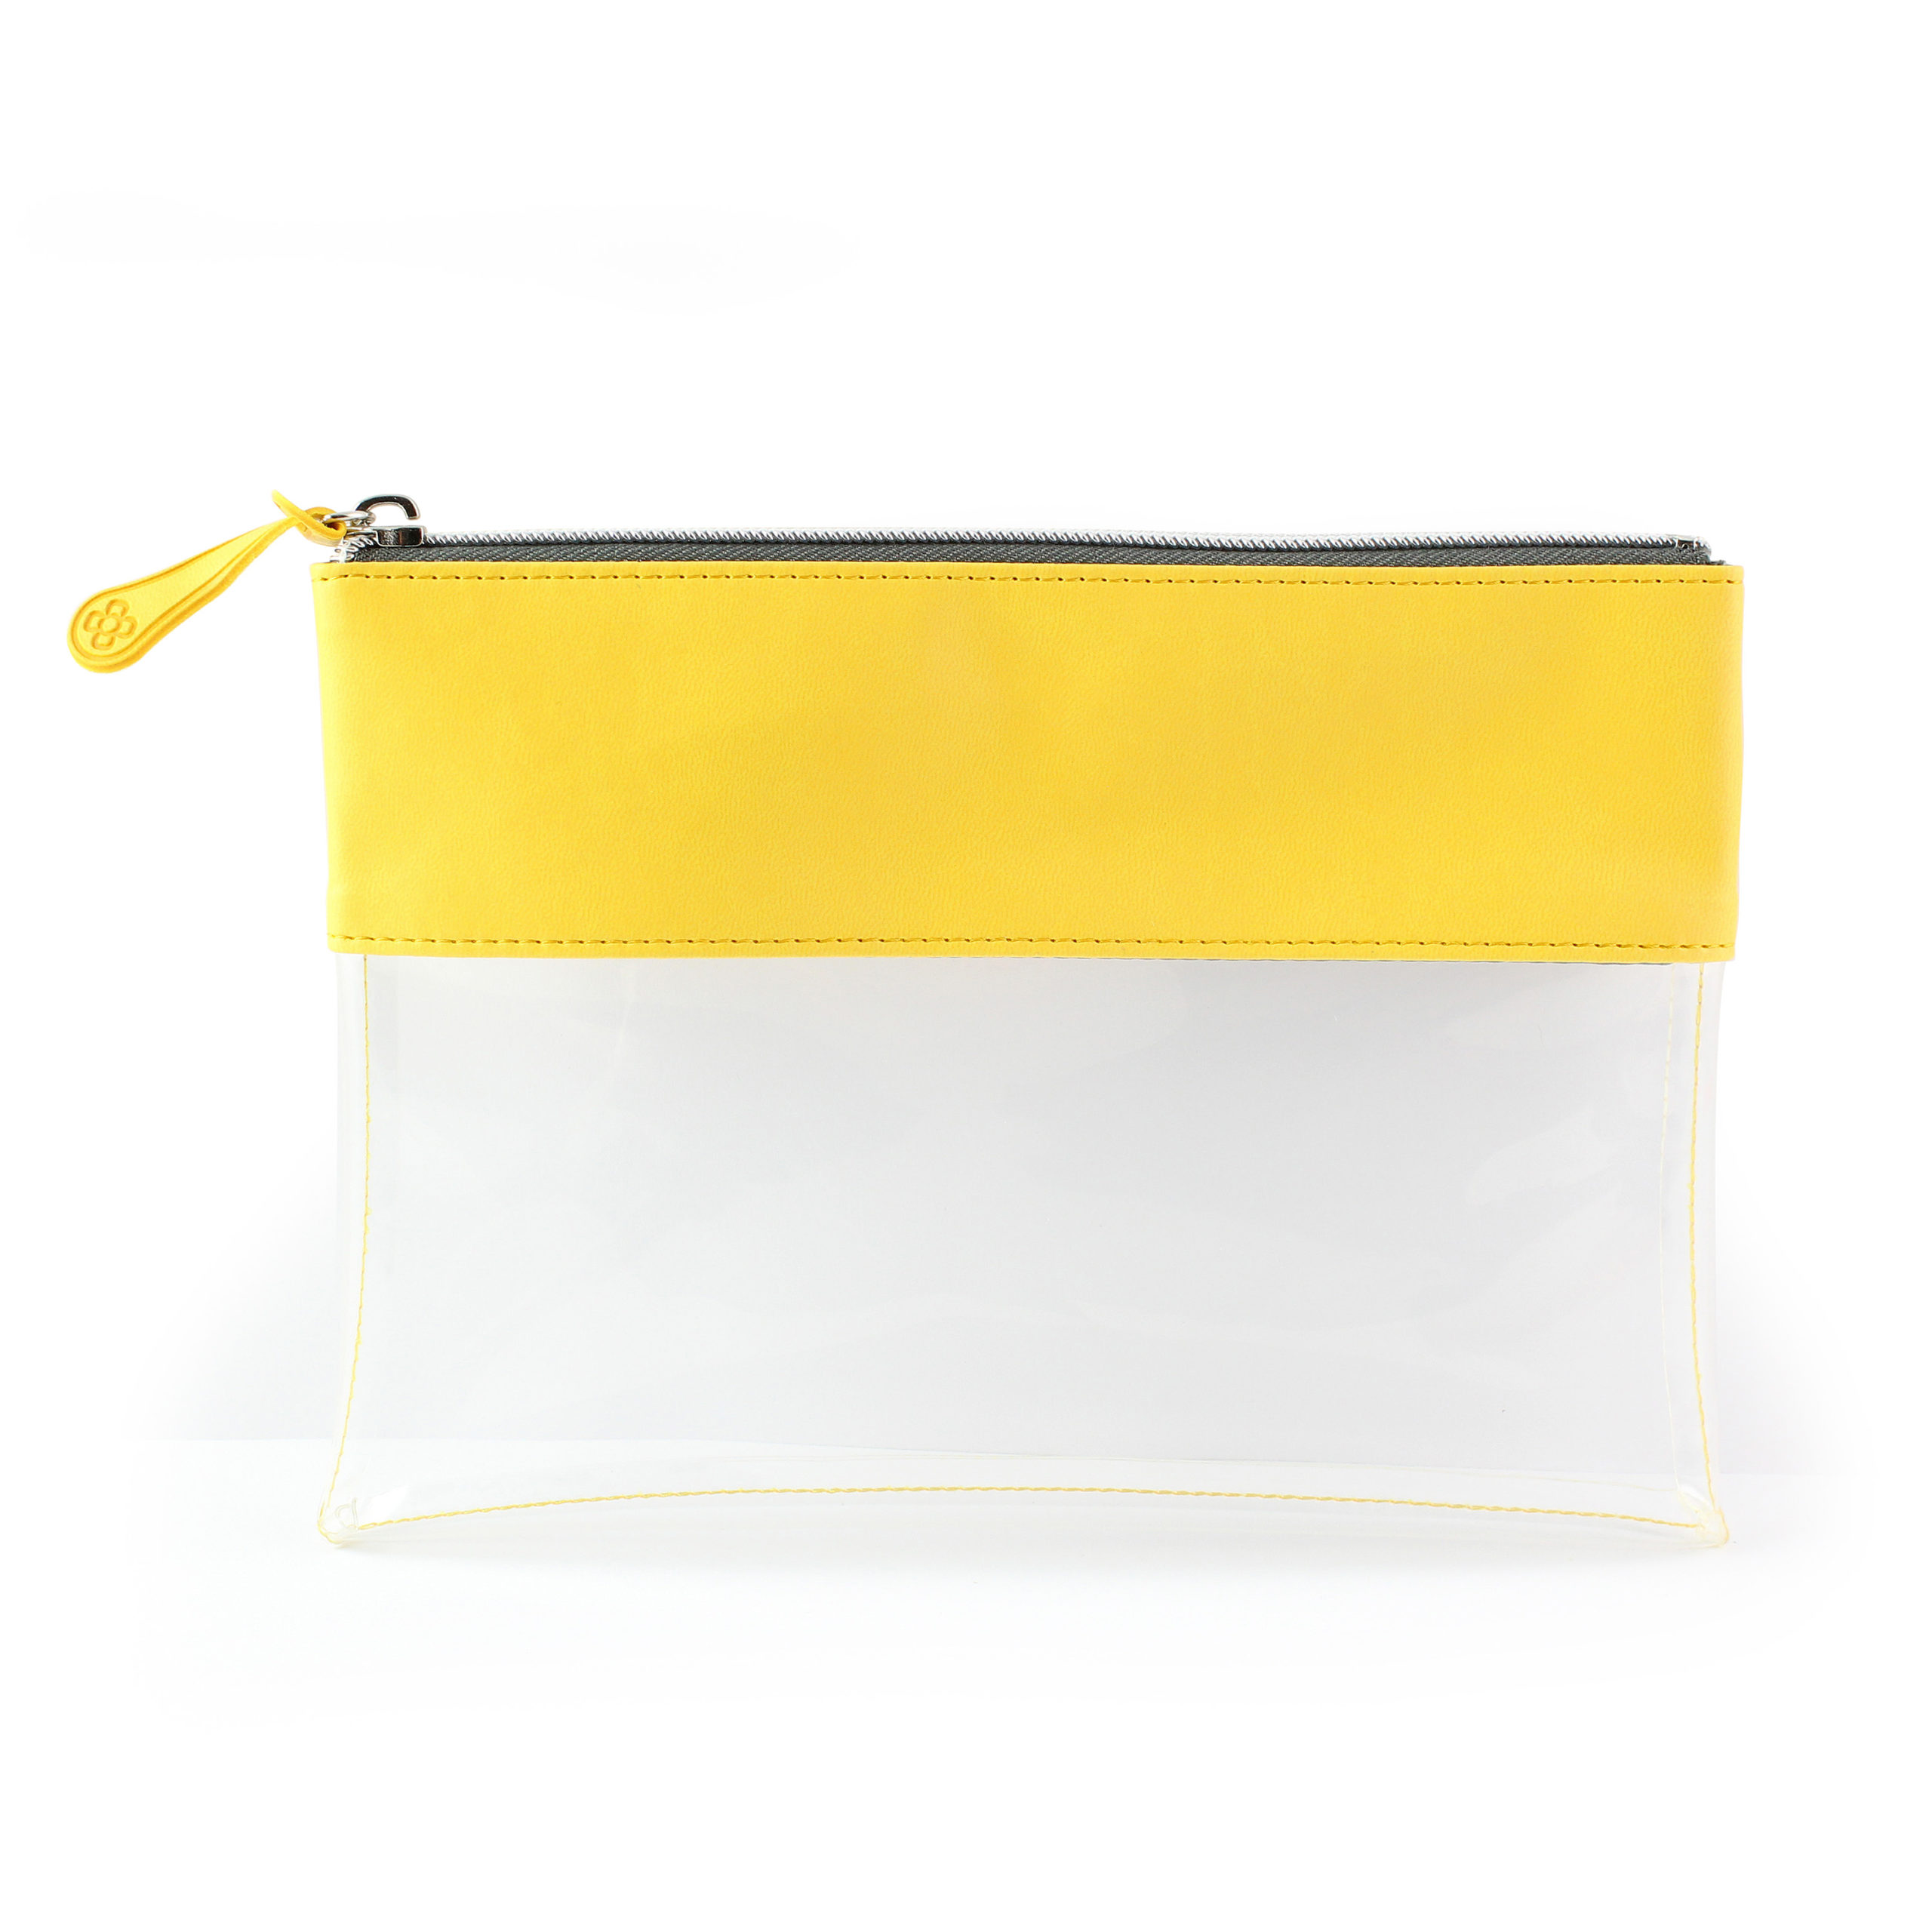 Sunflower Yellow Clear Pouch ideal as a travel pouch or pencil case.